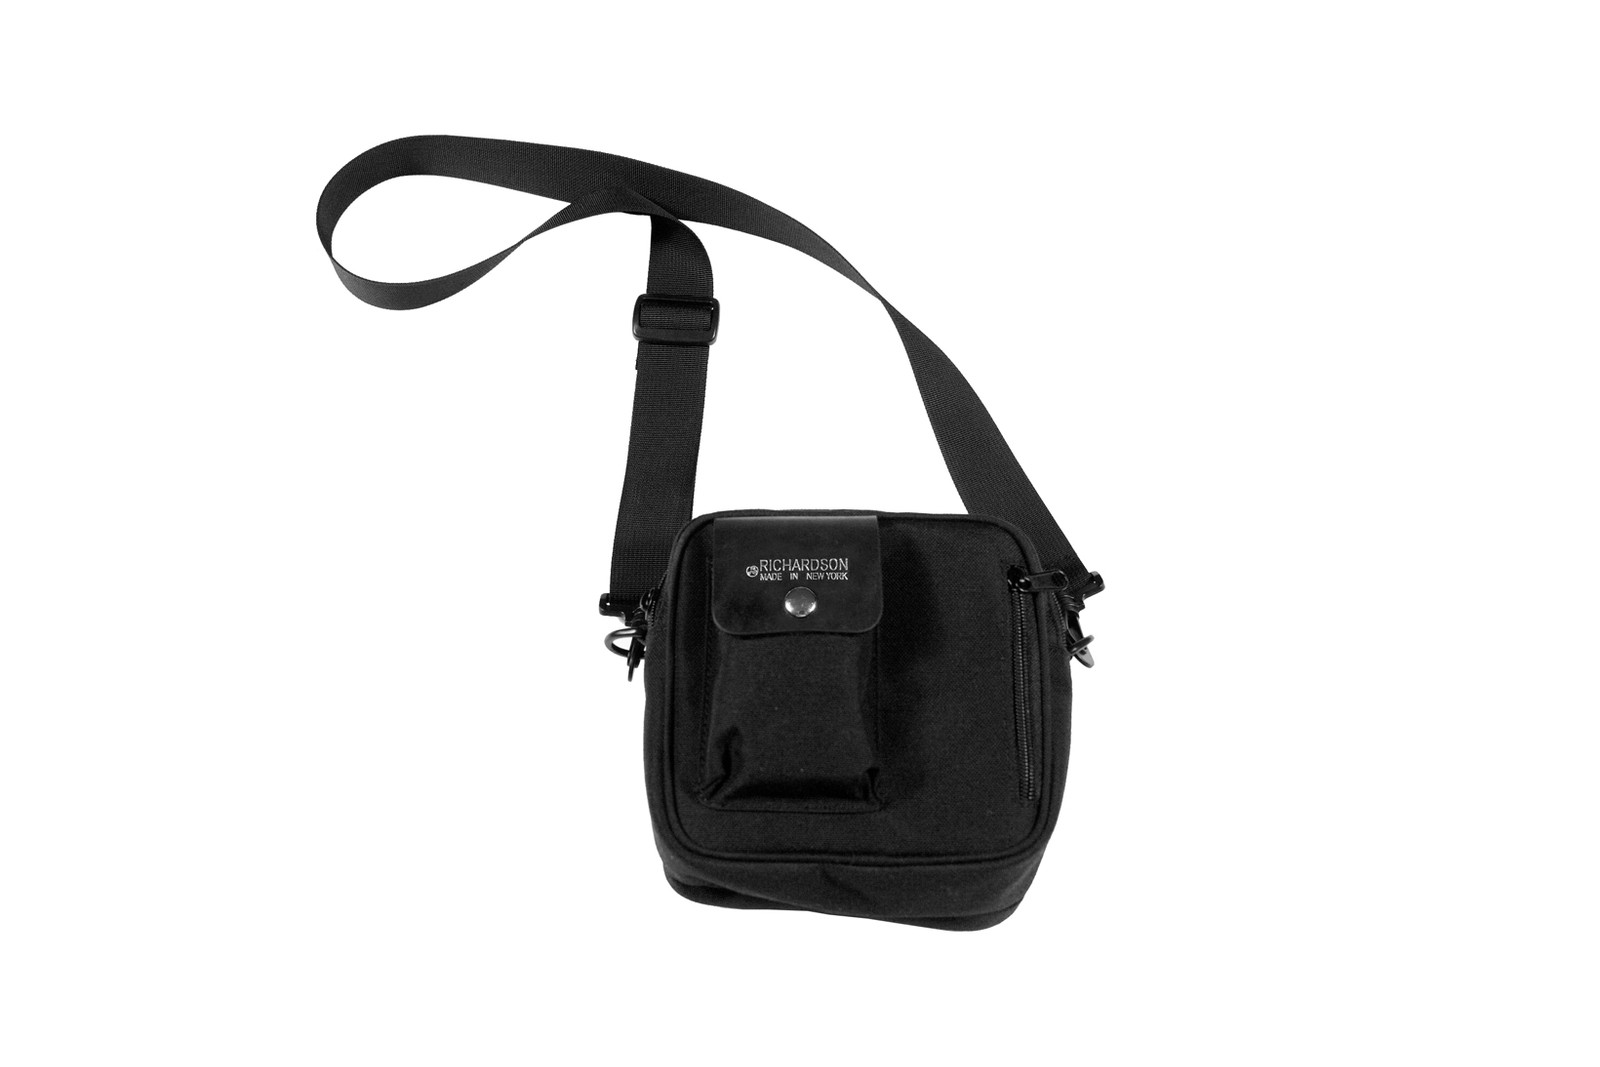 Richardson Spring/Summer 2018 Camera Bag Black